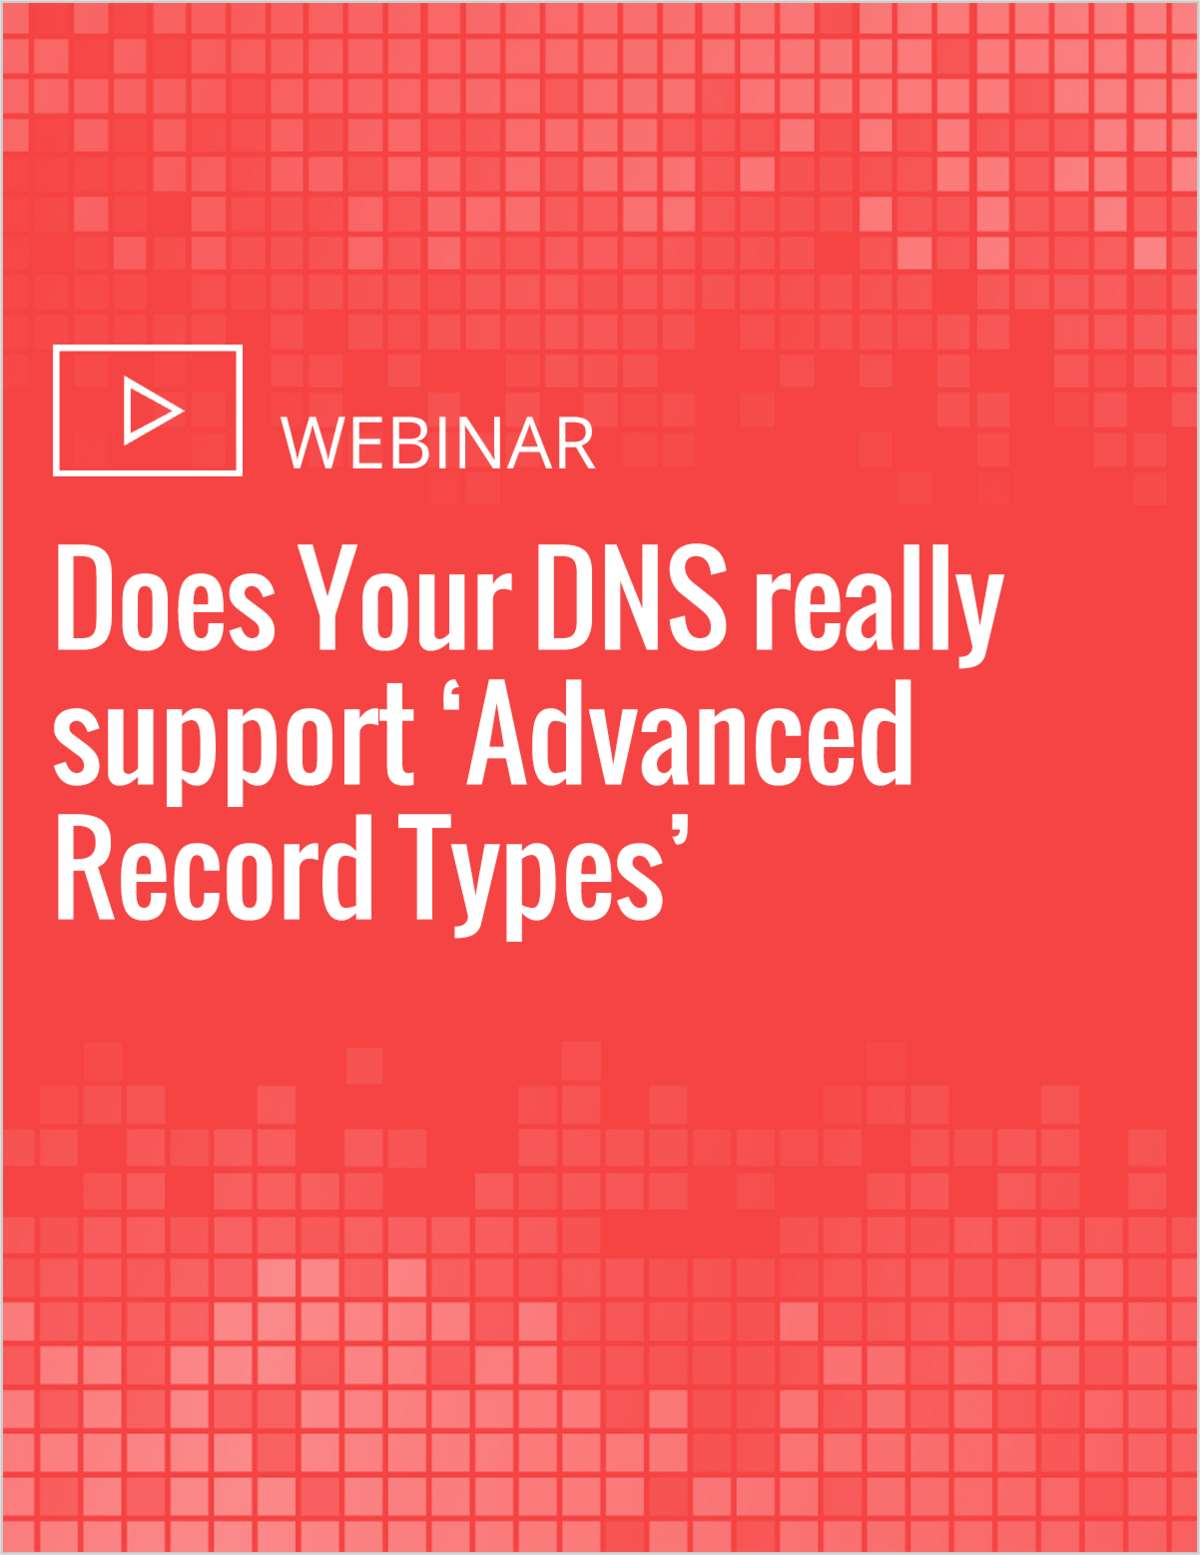 Does Your DNS really support 'Advanced Record Types'?